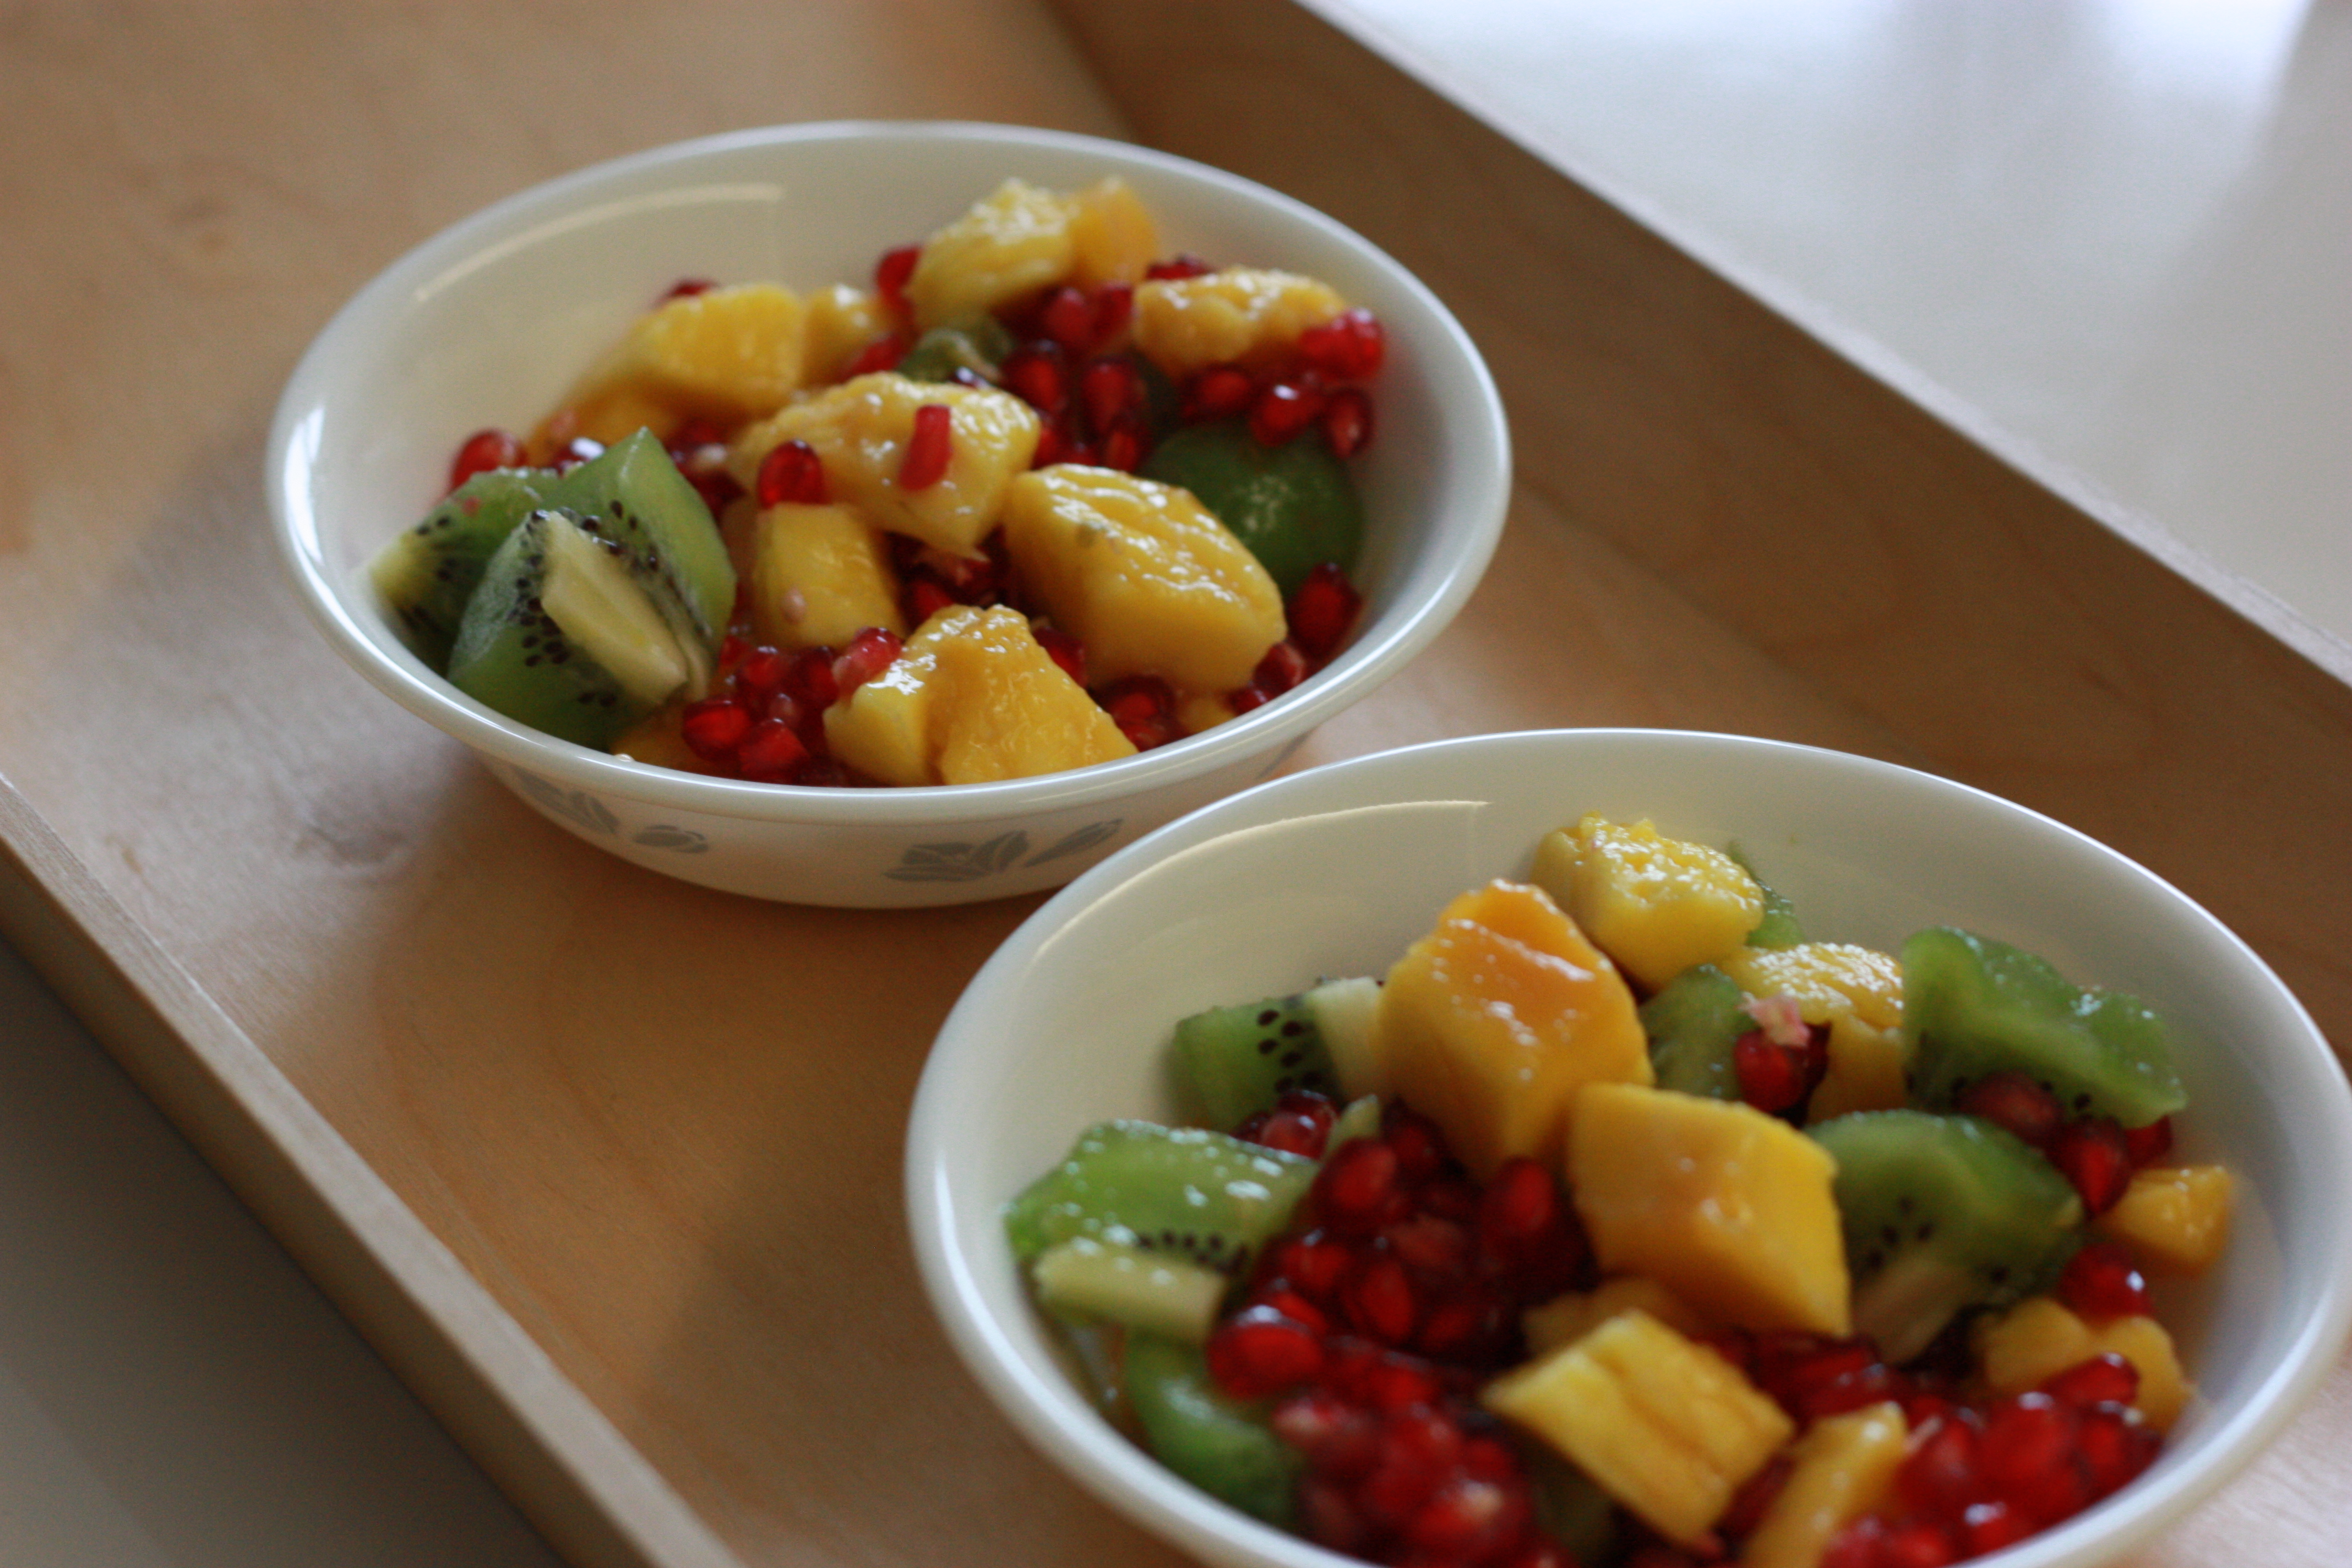 Fruit Bowl - a Healthy anytime anywhere snack